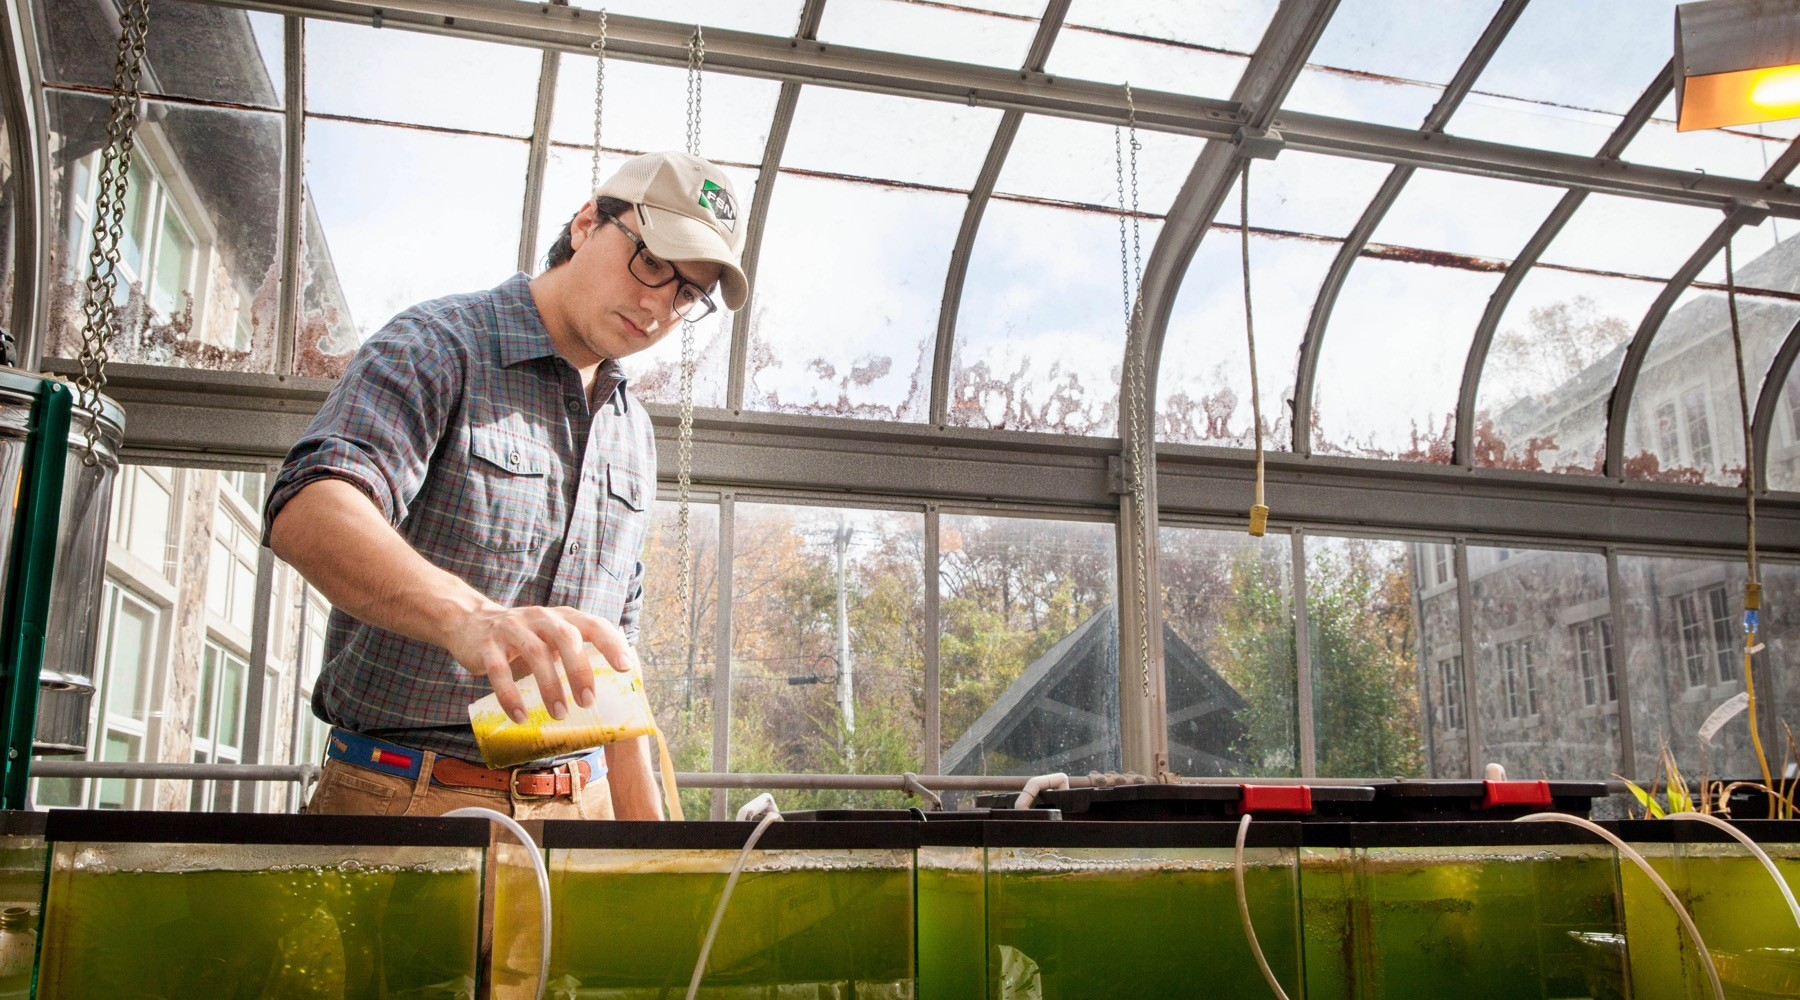 Luke Stallings, C'18, tends tanks of freshwater clams that could help make the University Farm's aquaponics system work in Sewanee's temperate climate. Photo by Buck Butler